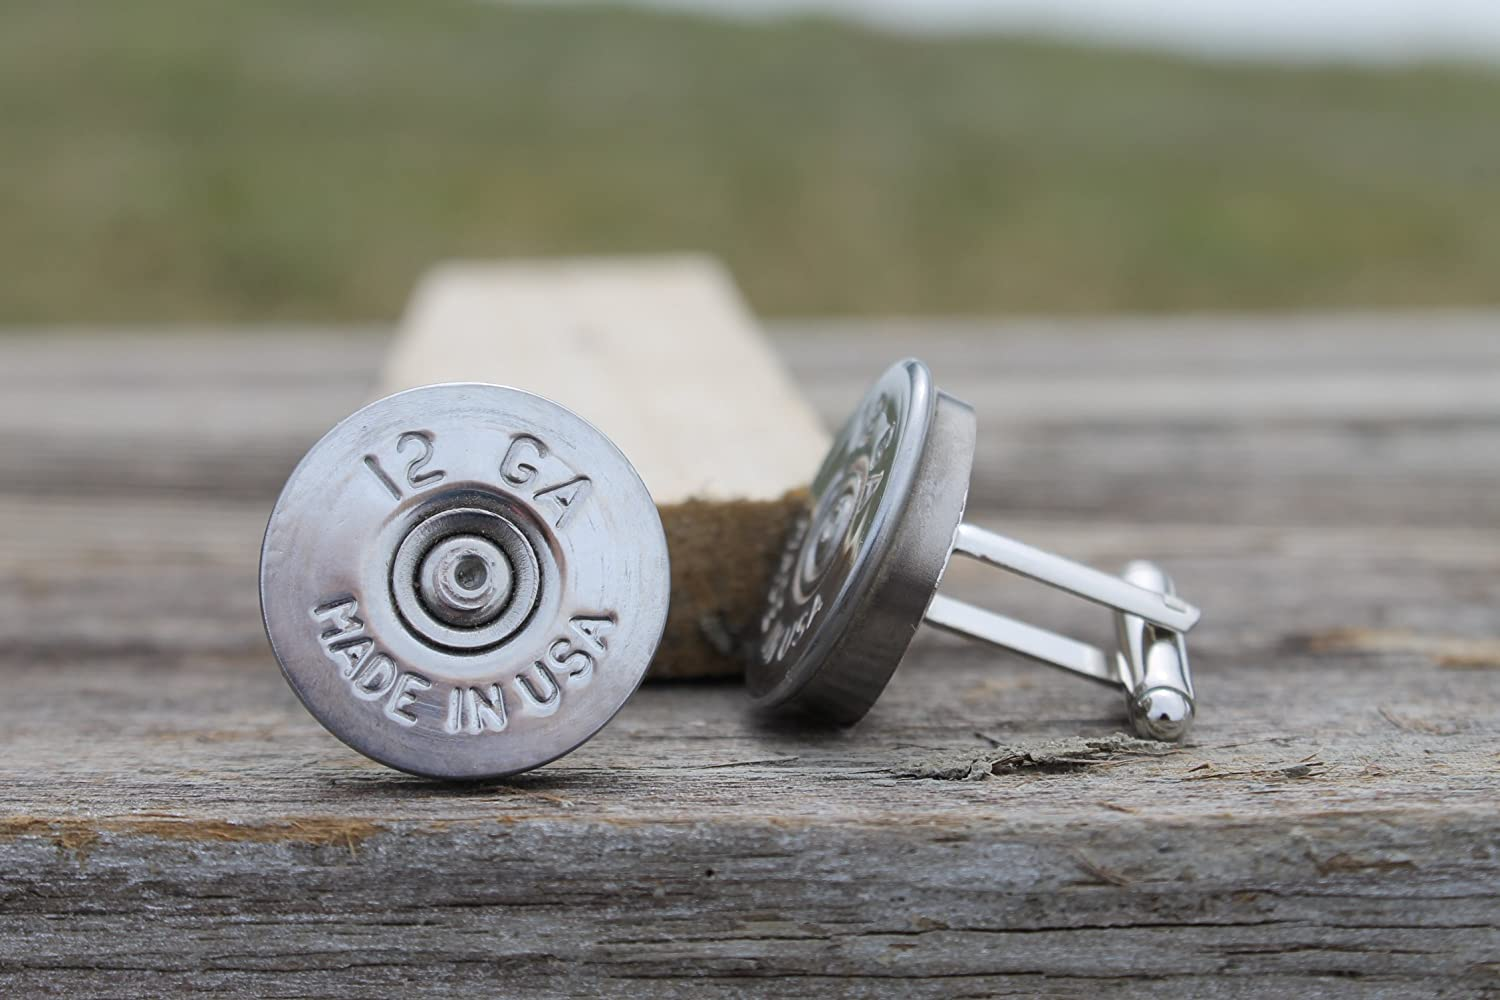 12 Gauge Federal Silver Shot Gun Shell CuffLinks Made in the USA